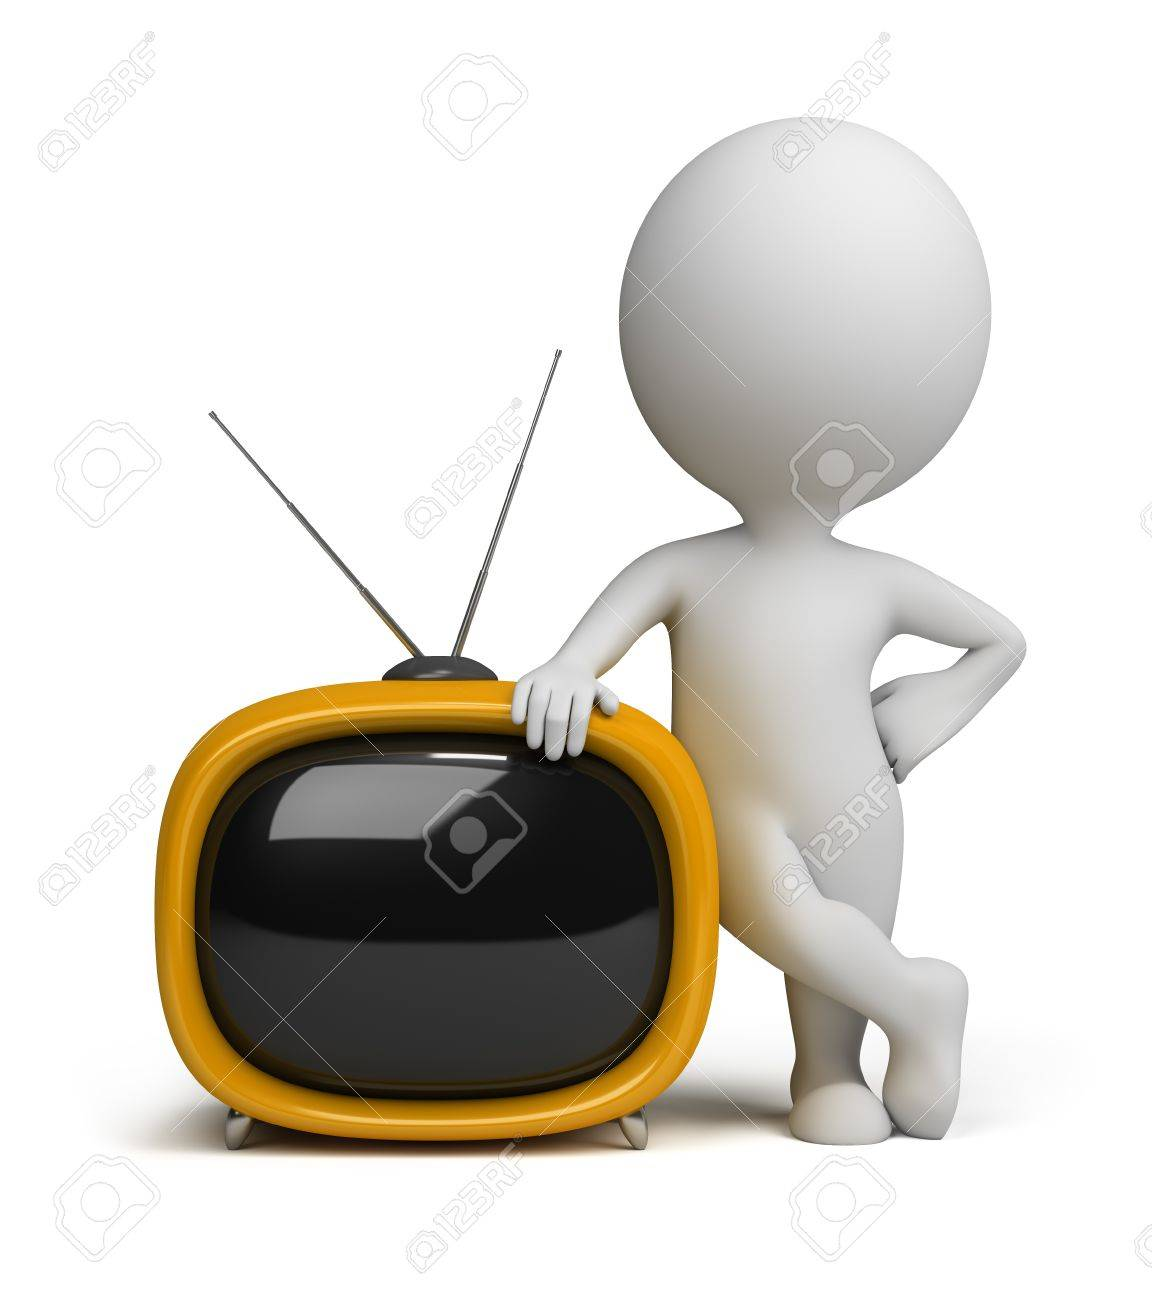 3d small person standing next to a yellow retro TV. 3d image. Isolated white background. Stock Photo - 10280410